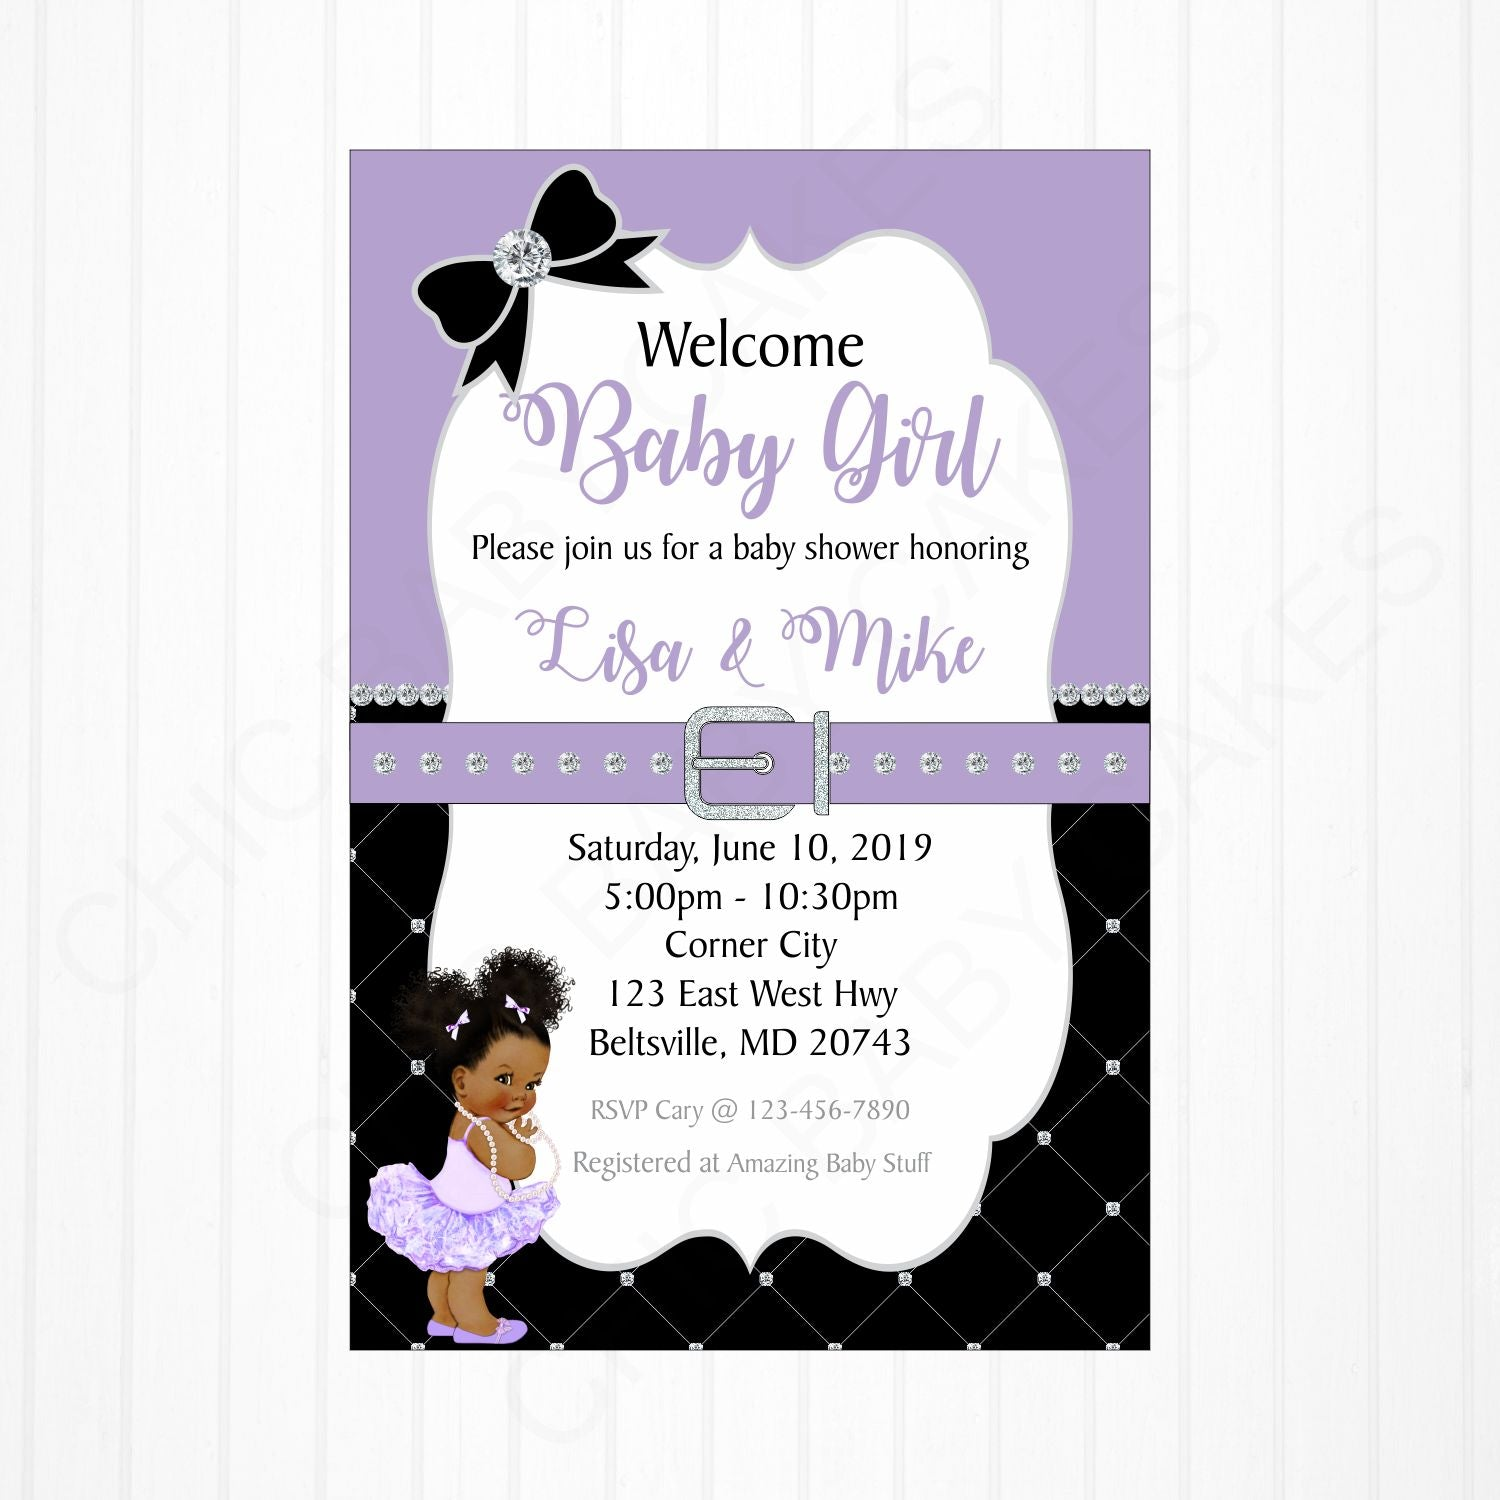 Girl Baby Shower Invitation - Lavender, Black